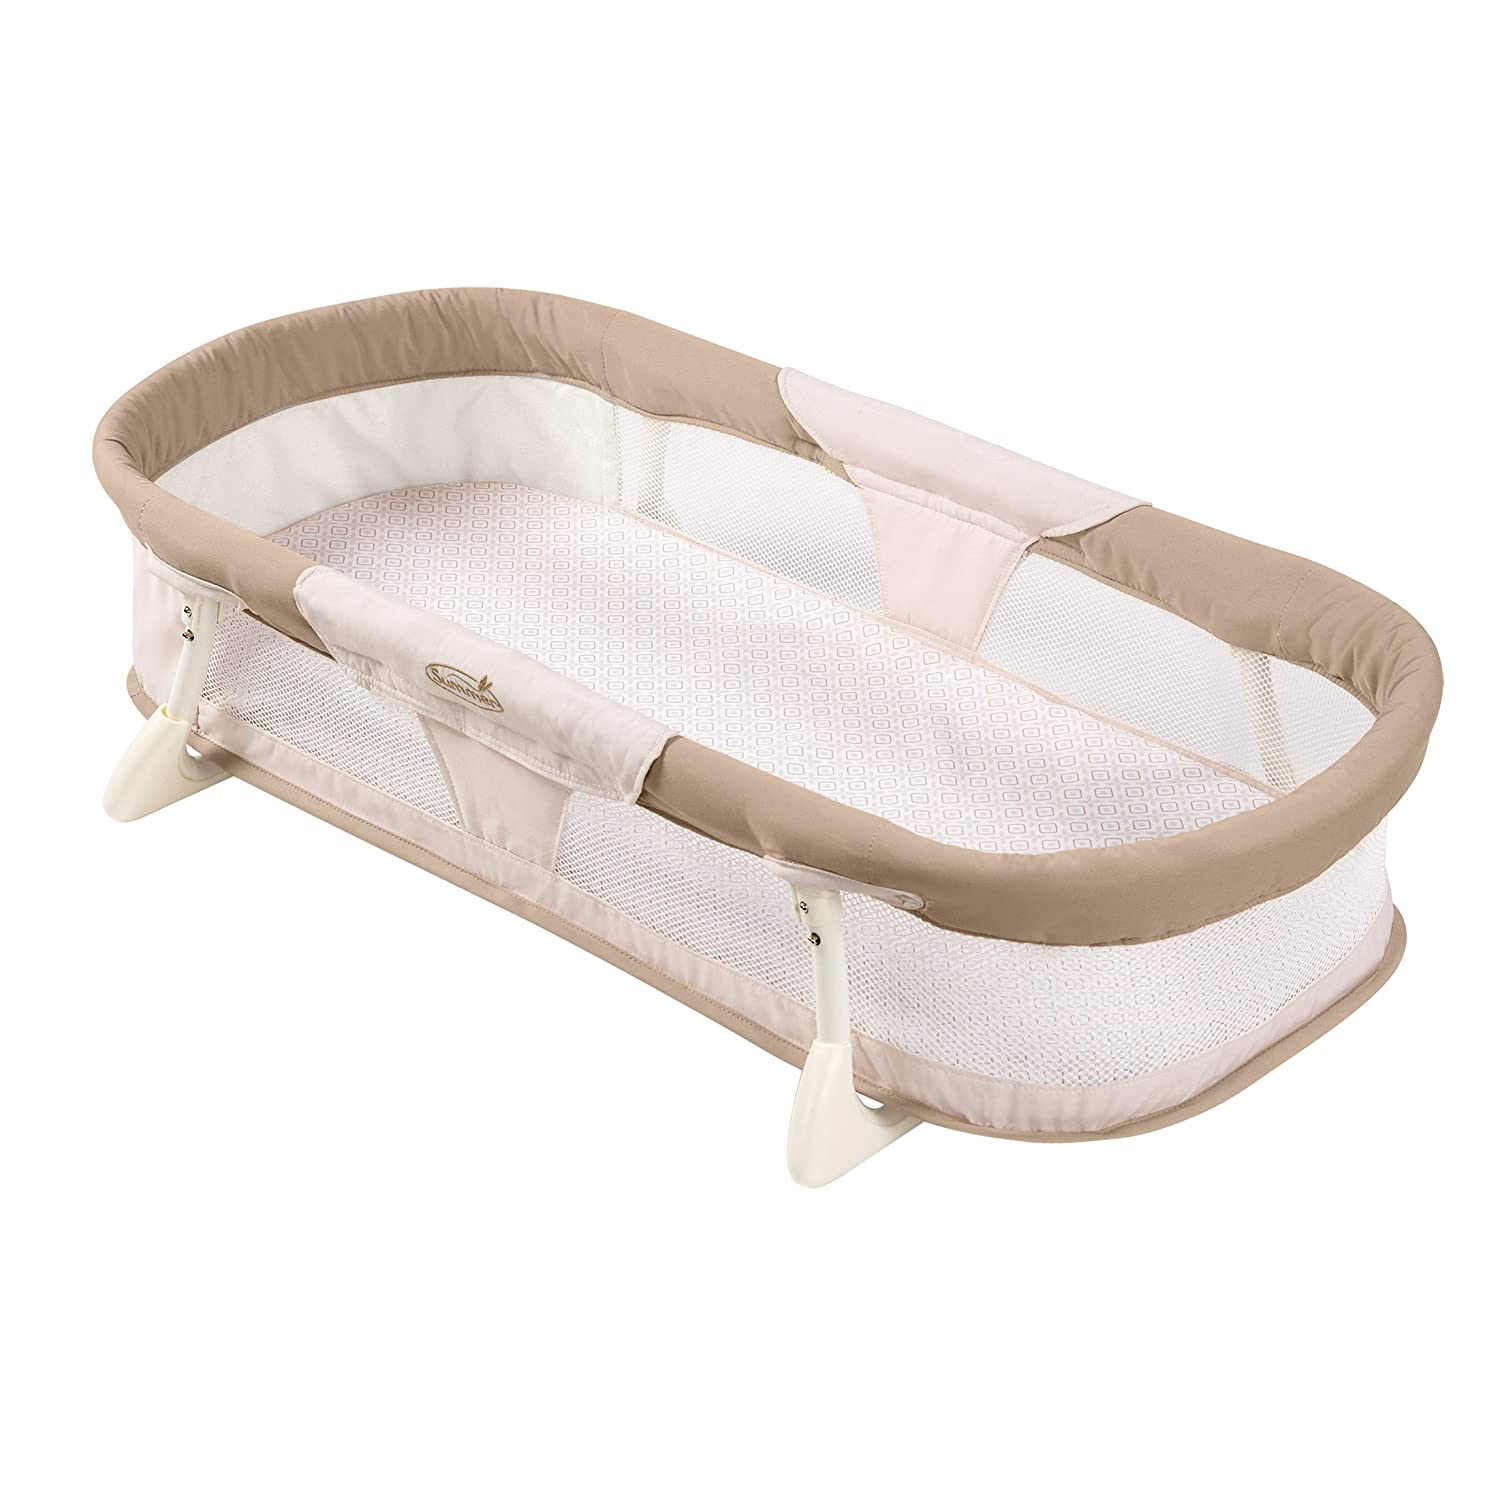 Summer Infant Fold N Go Travel Portable Sleep By Your Side